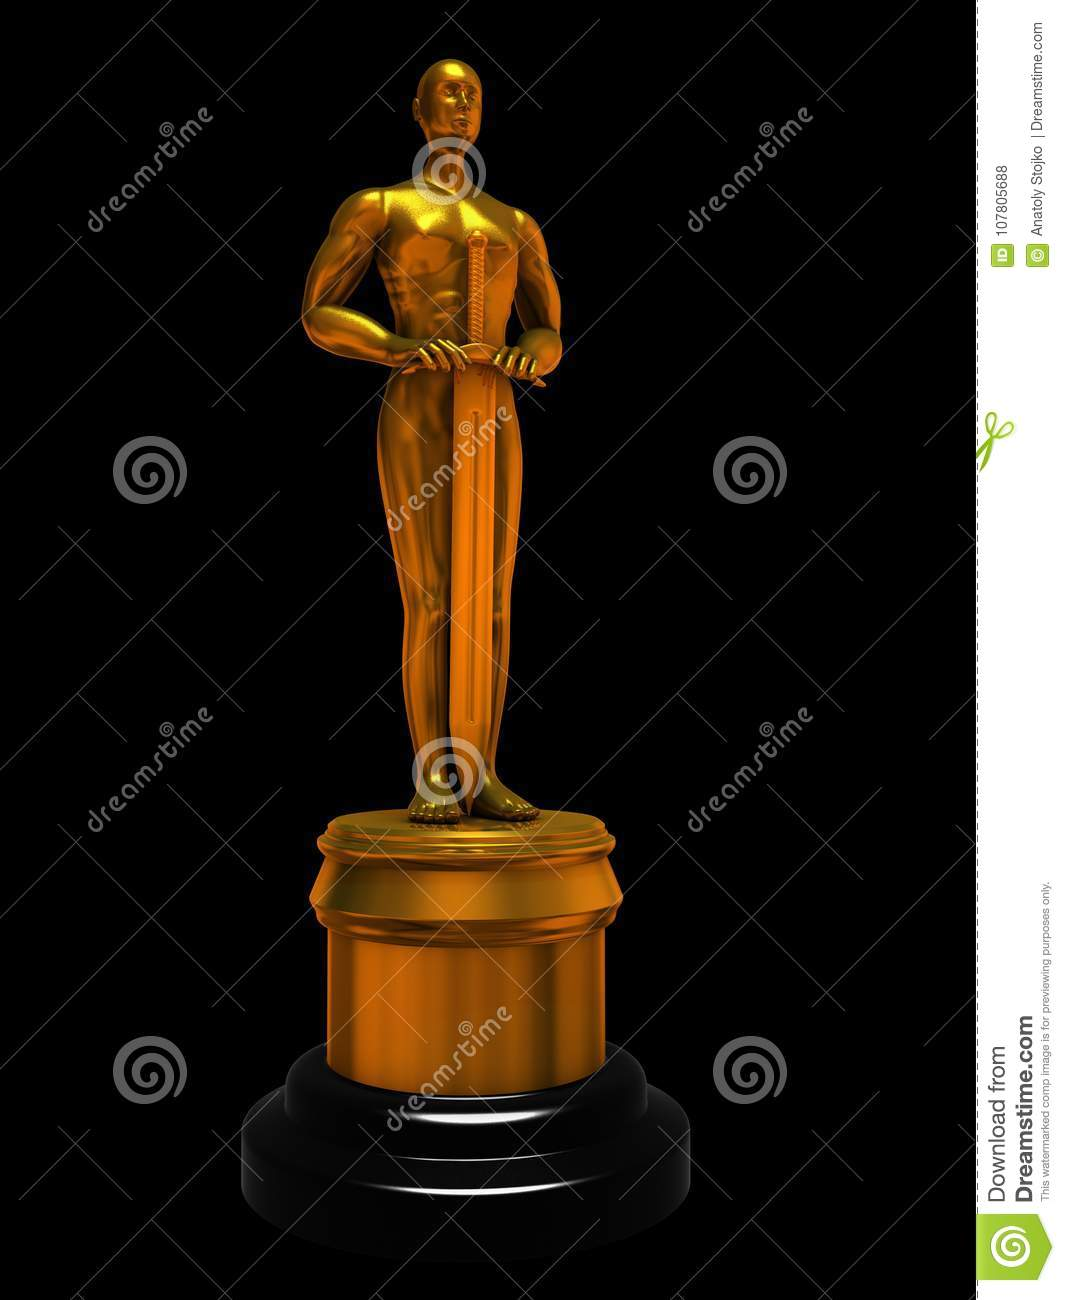 Gold statuette of man isolated on black